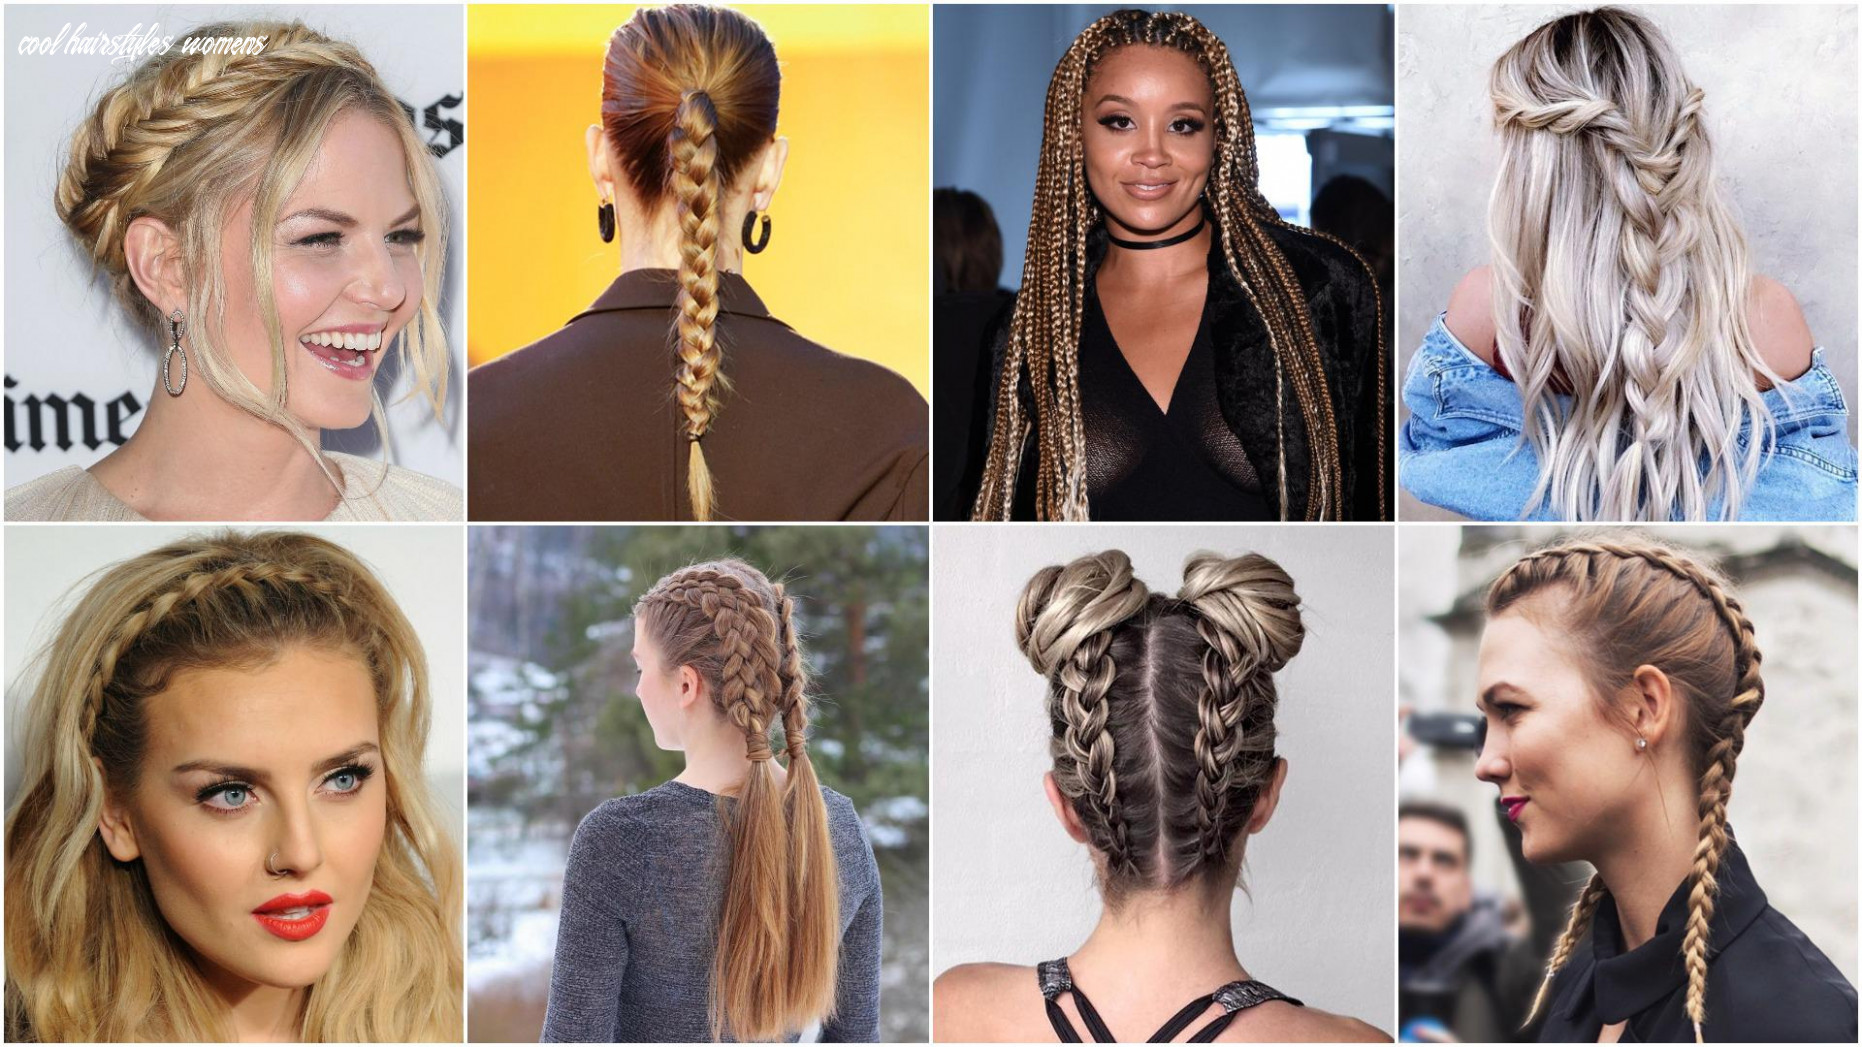 9 cool hairstyles for girls and women yve style